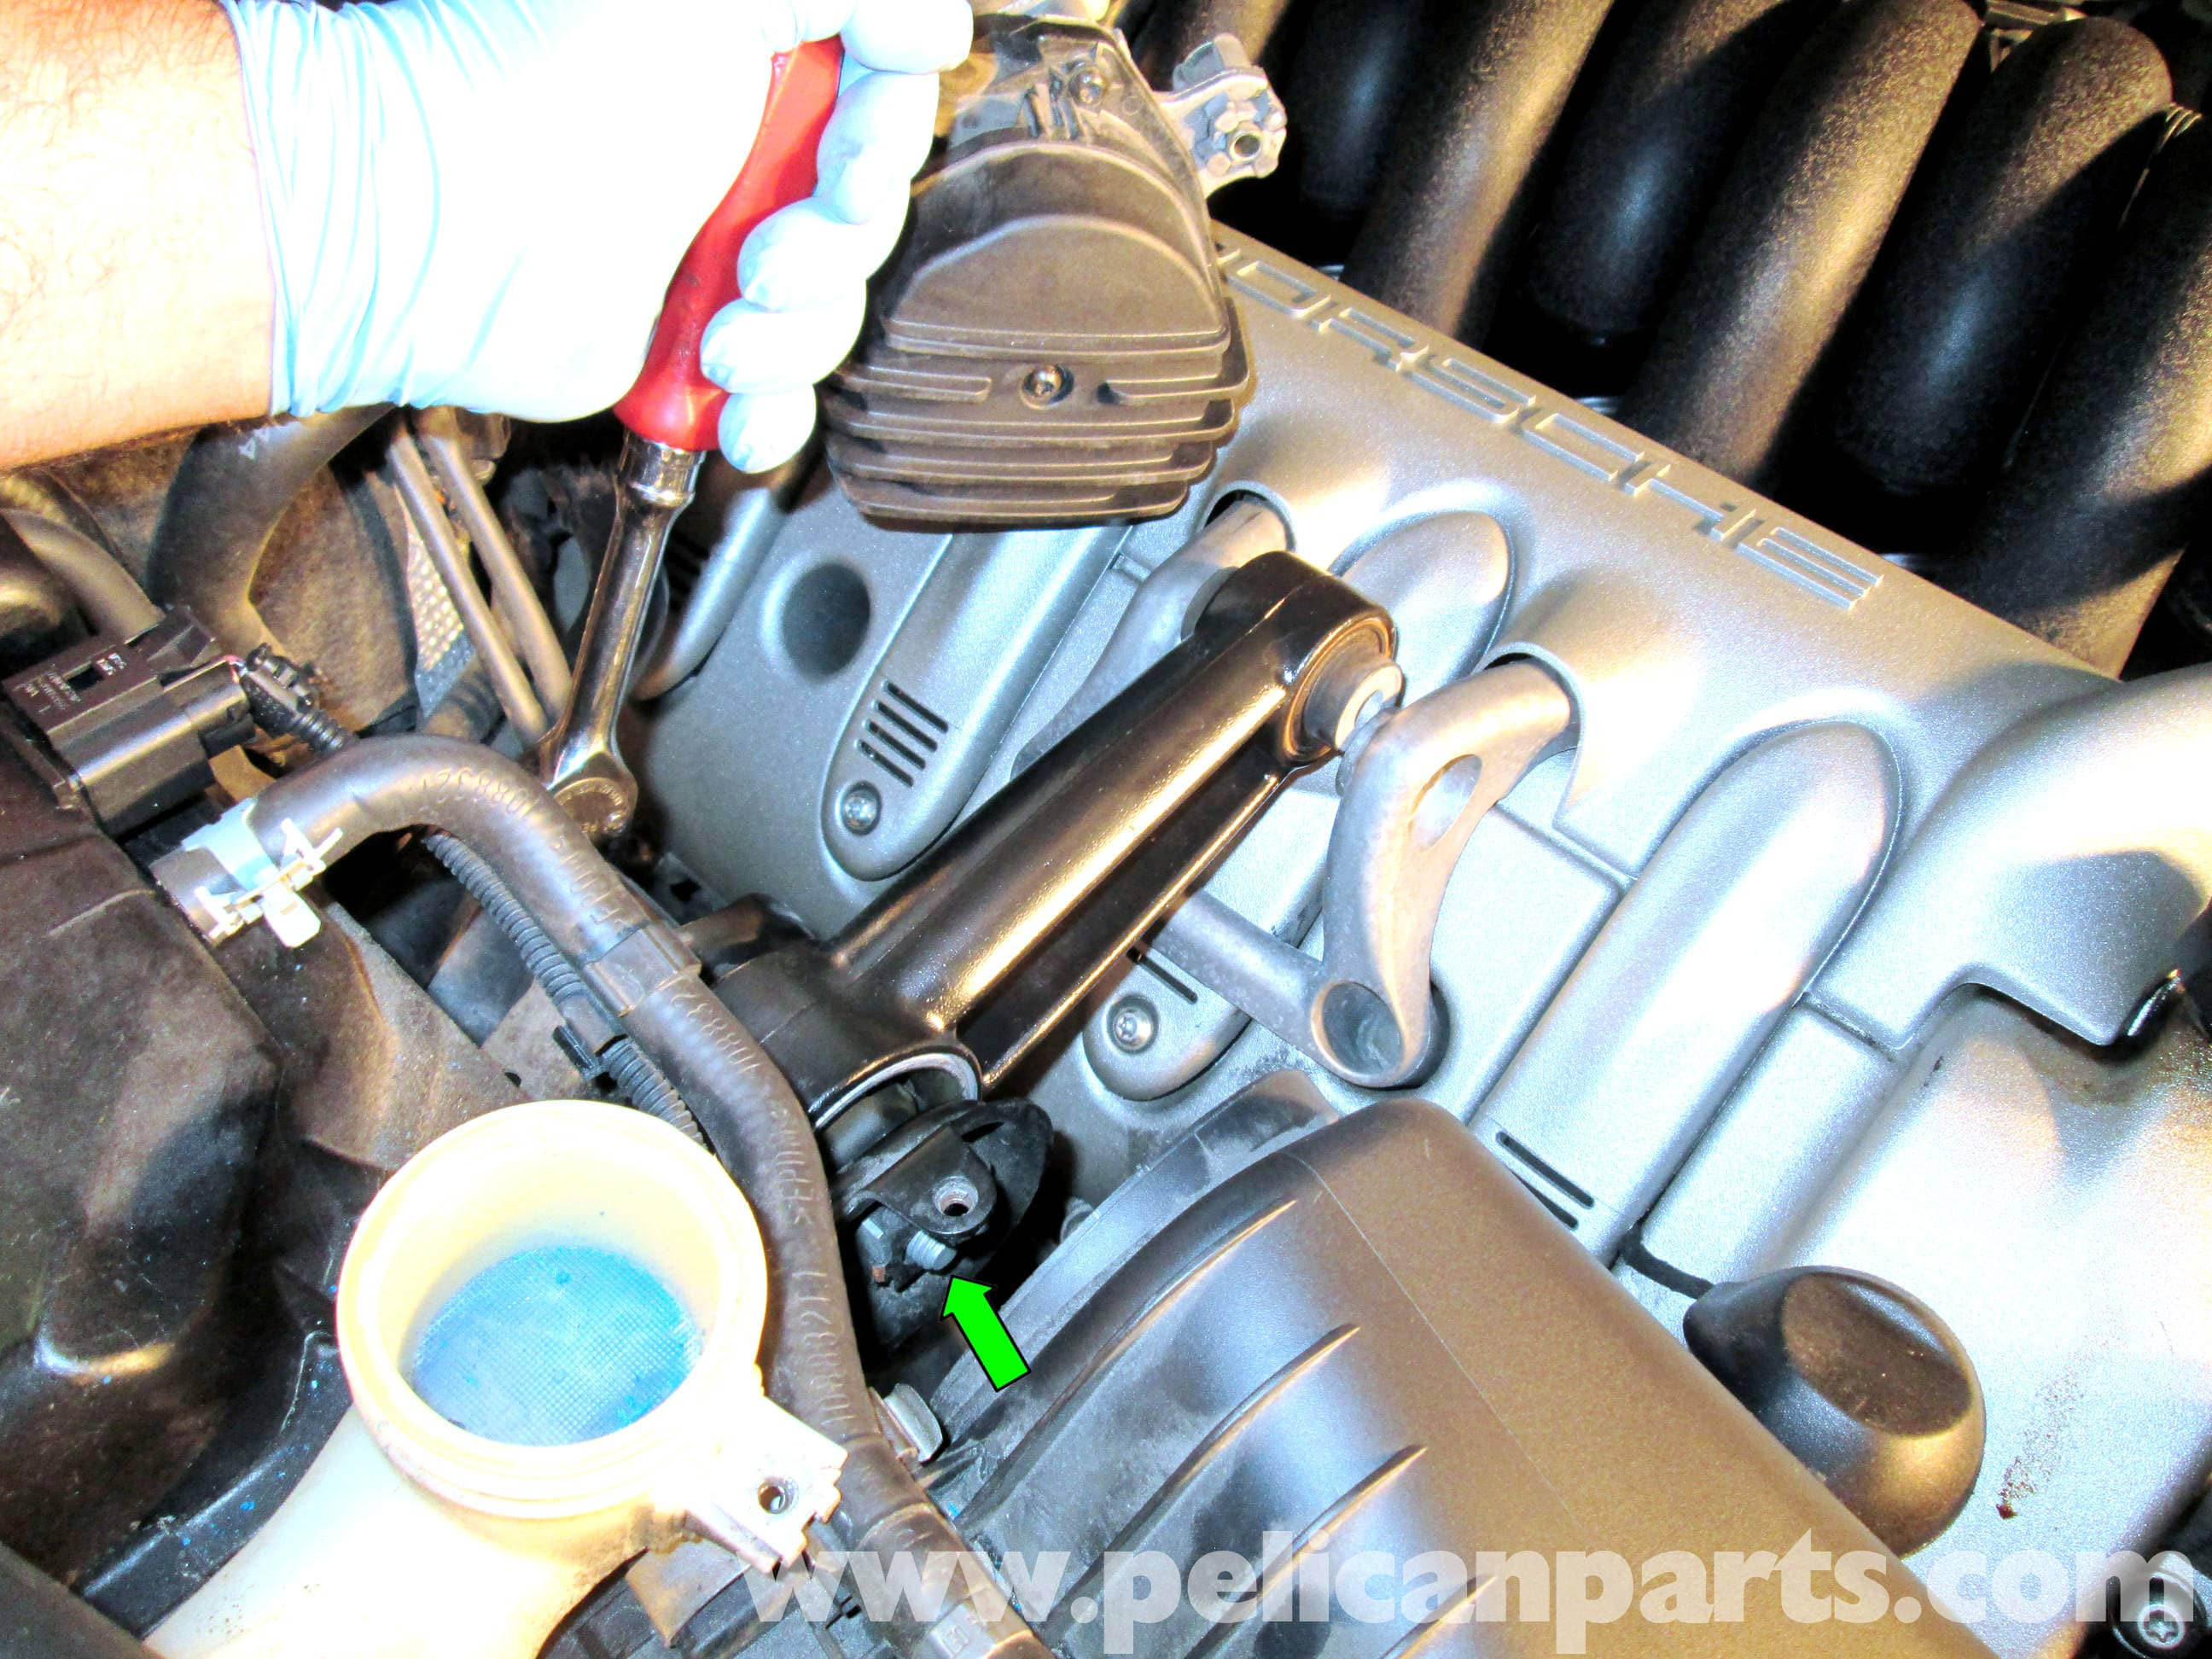 Porsche Cayenne Coil Pack and Spark Plug Replacement | 2003-2008 ...